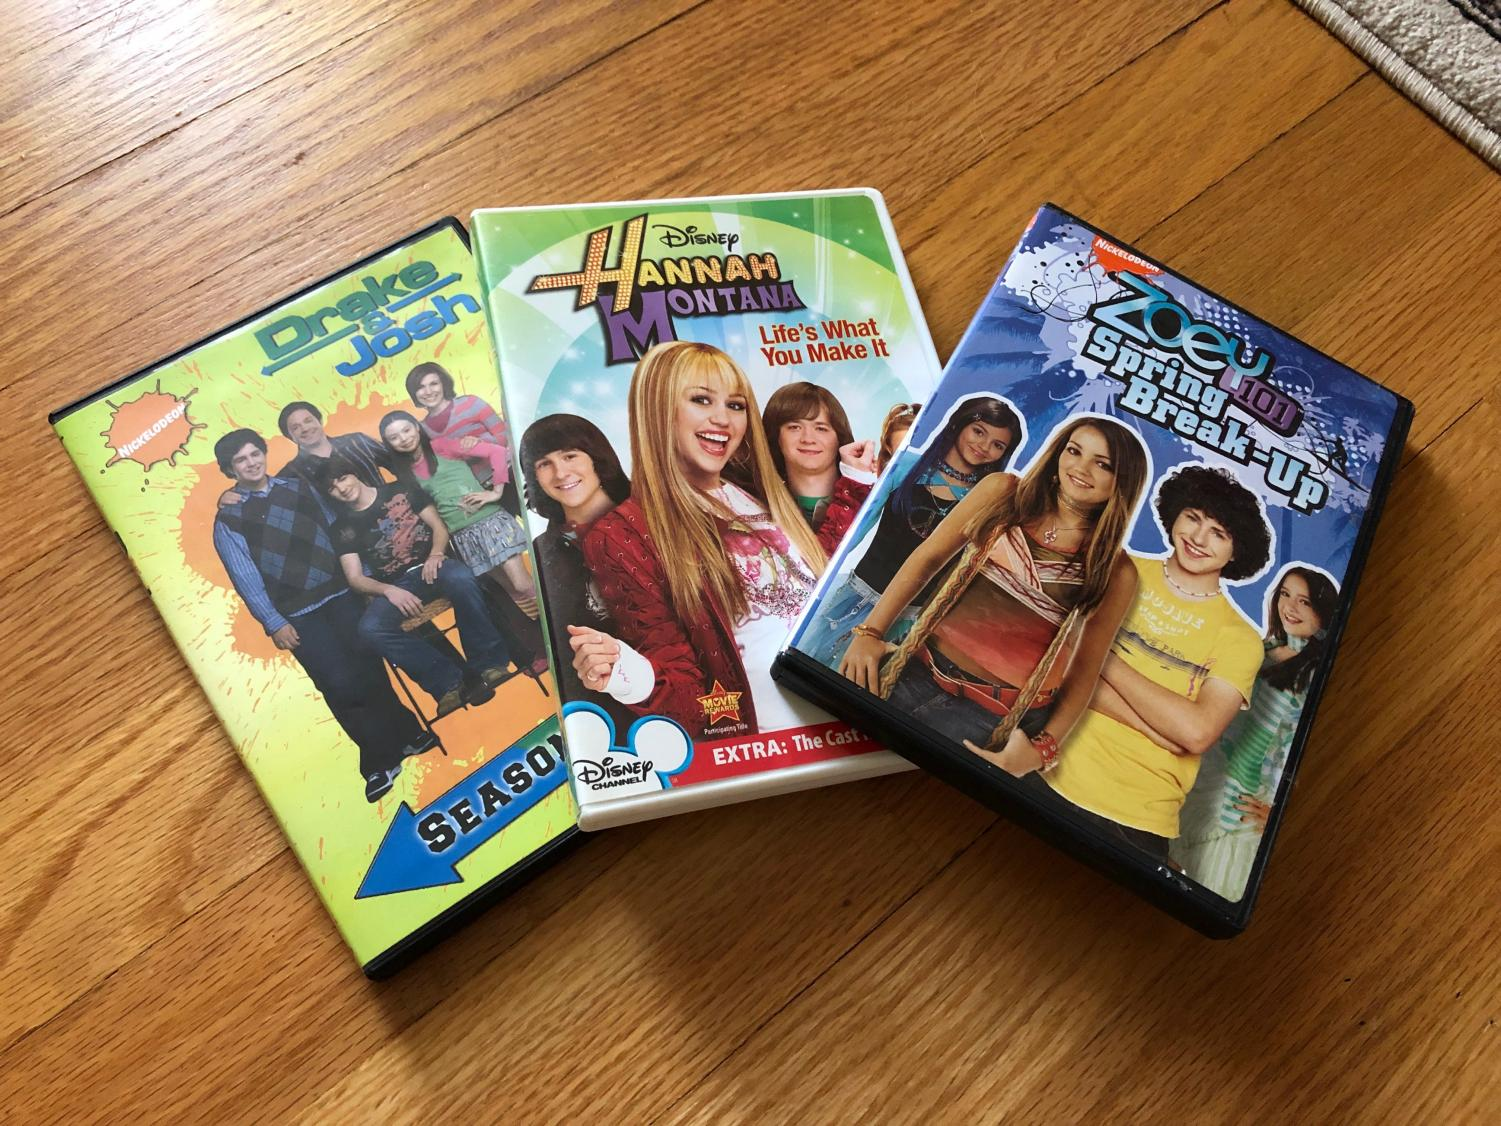 Certain TV shows from the 2000's have earned their place as iconic childhood shows.